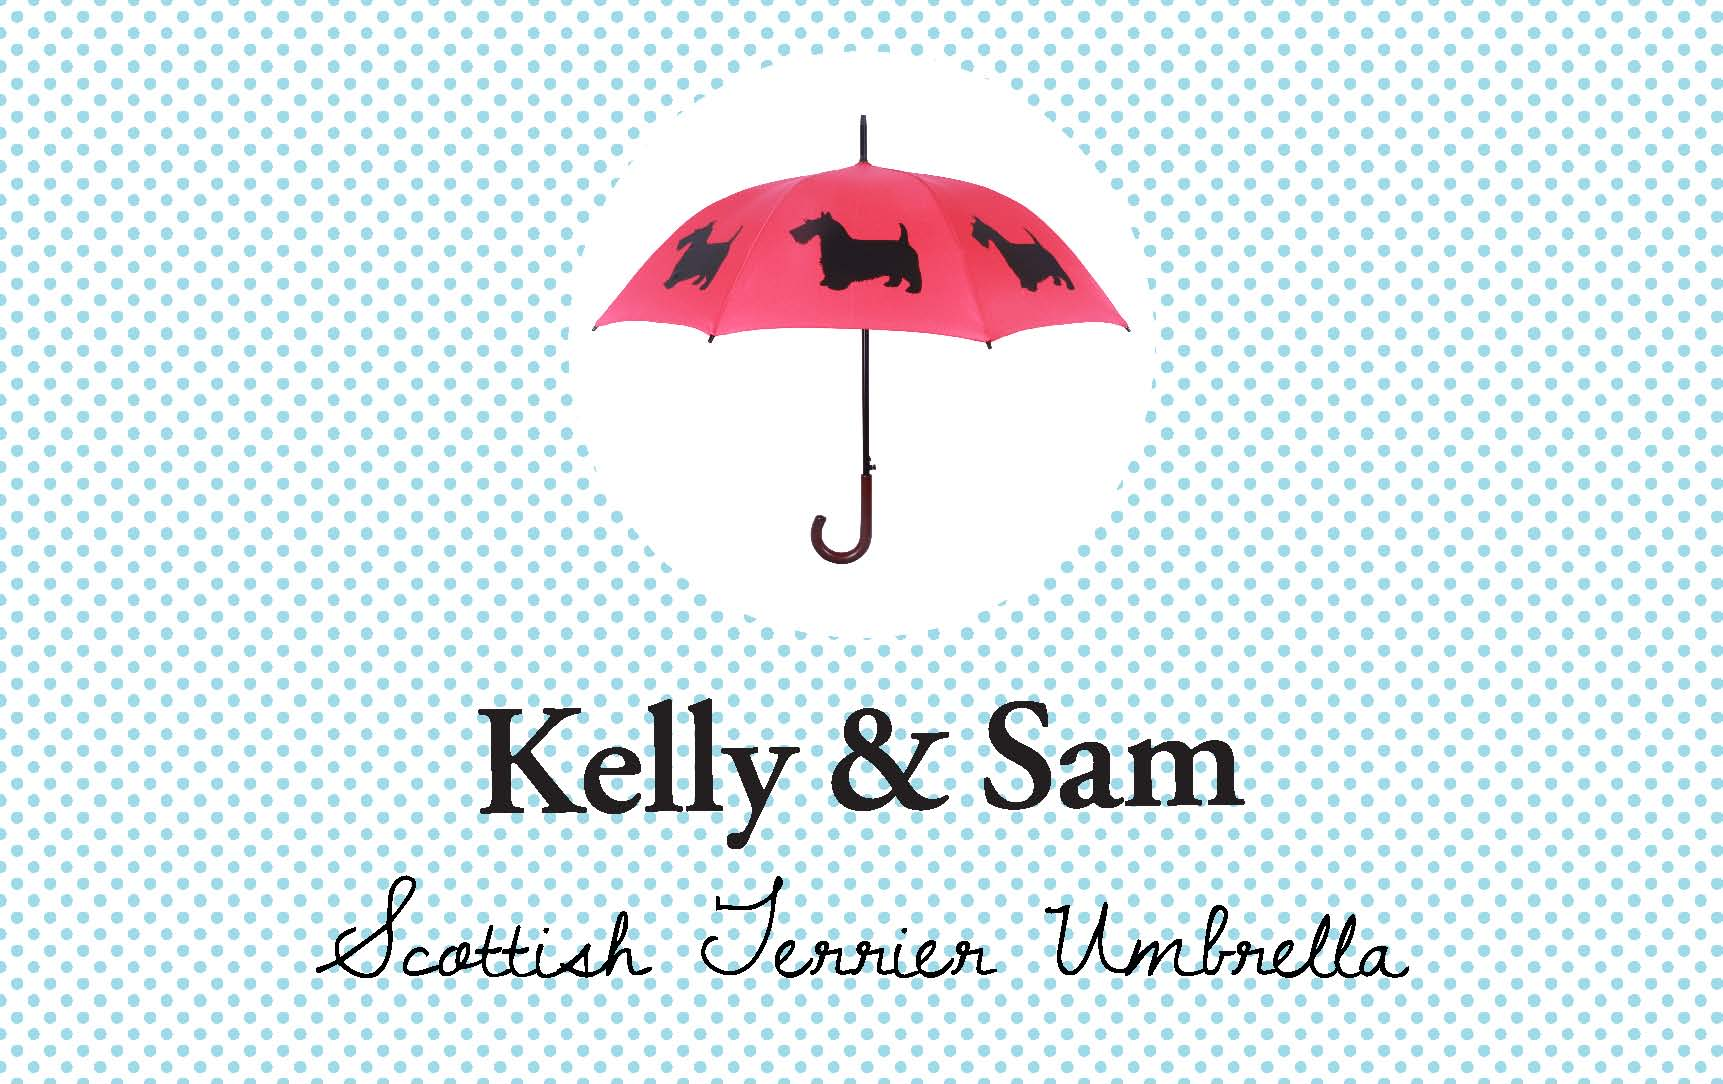 KELLY & SAM